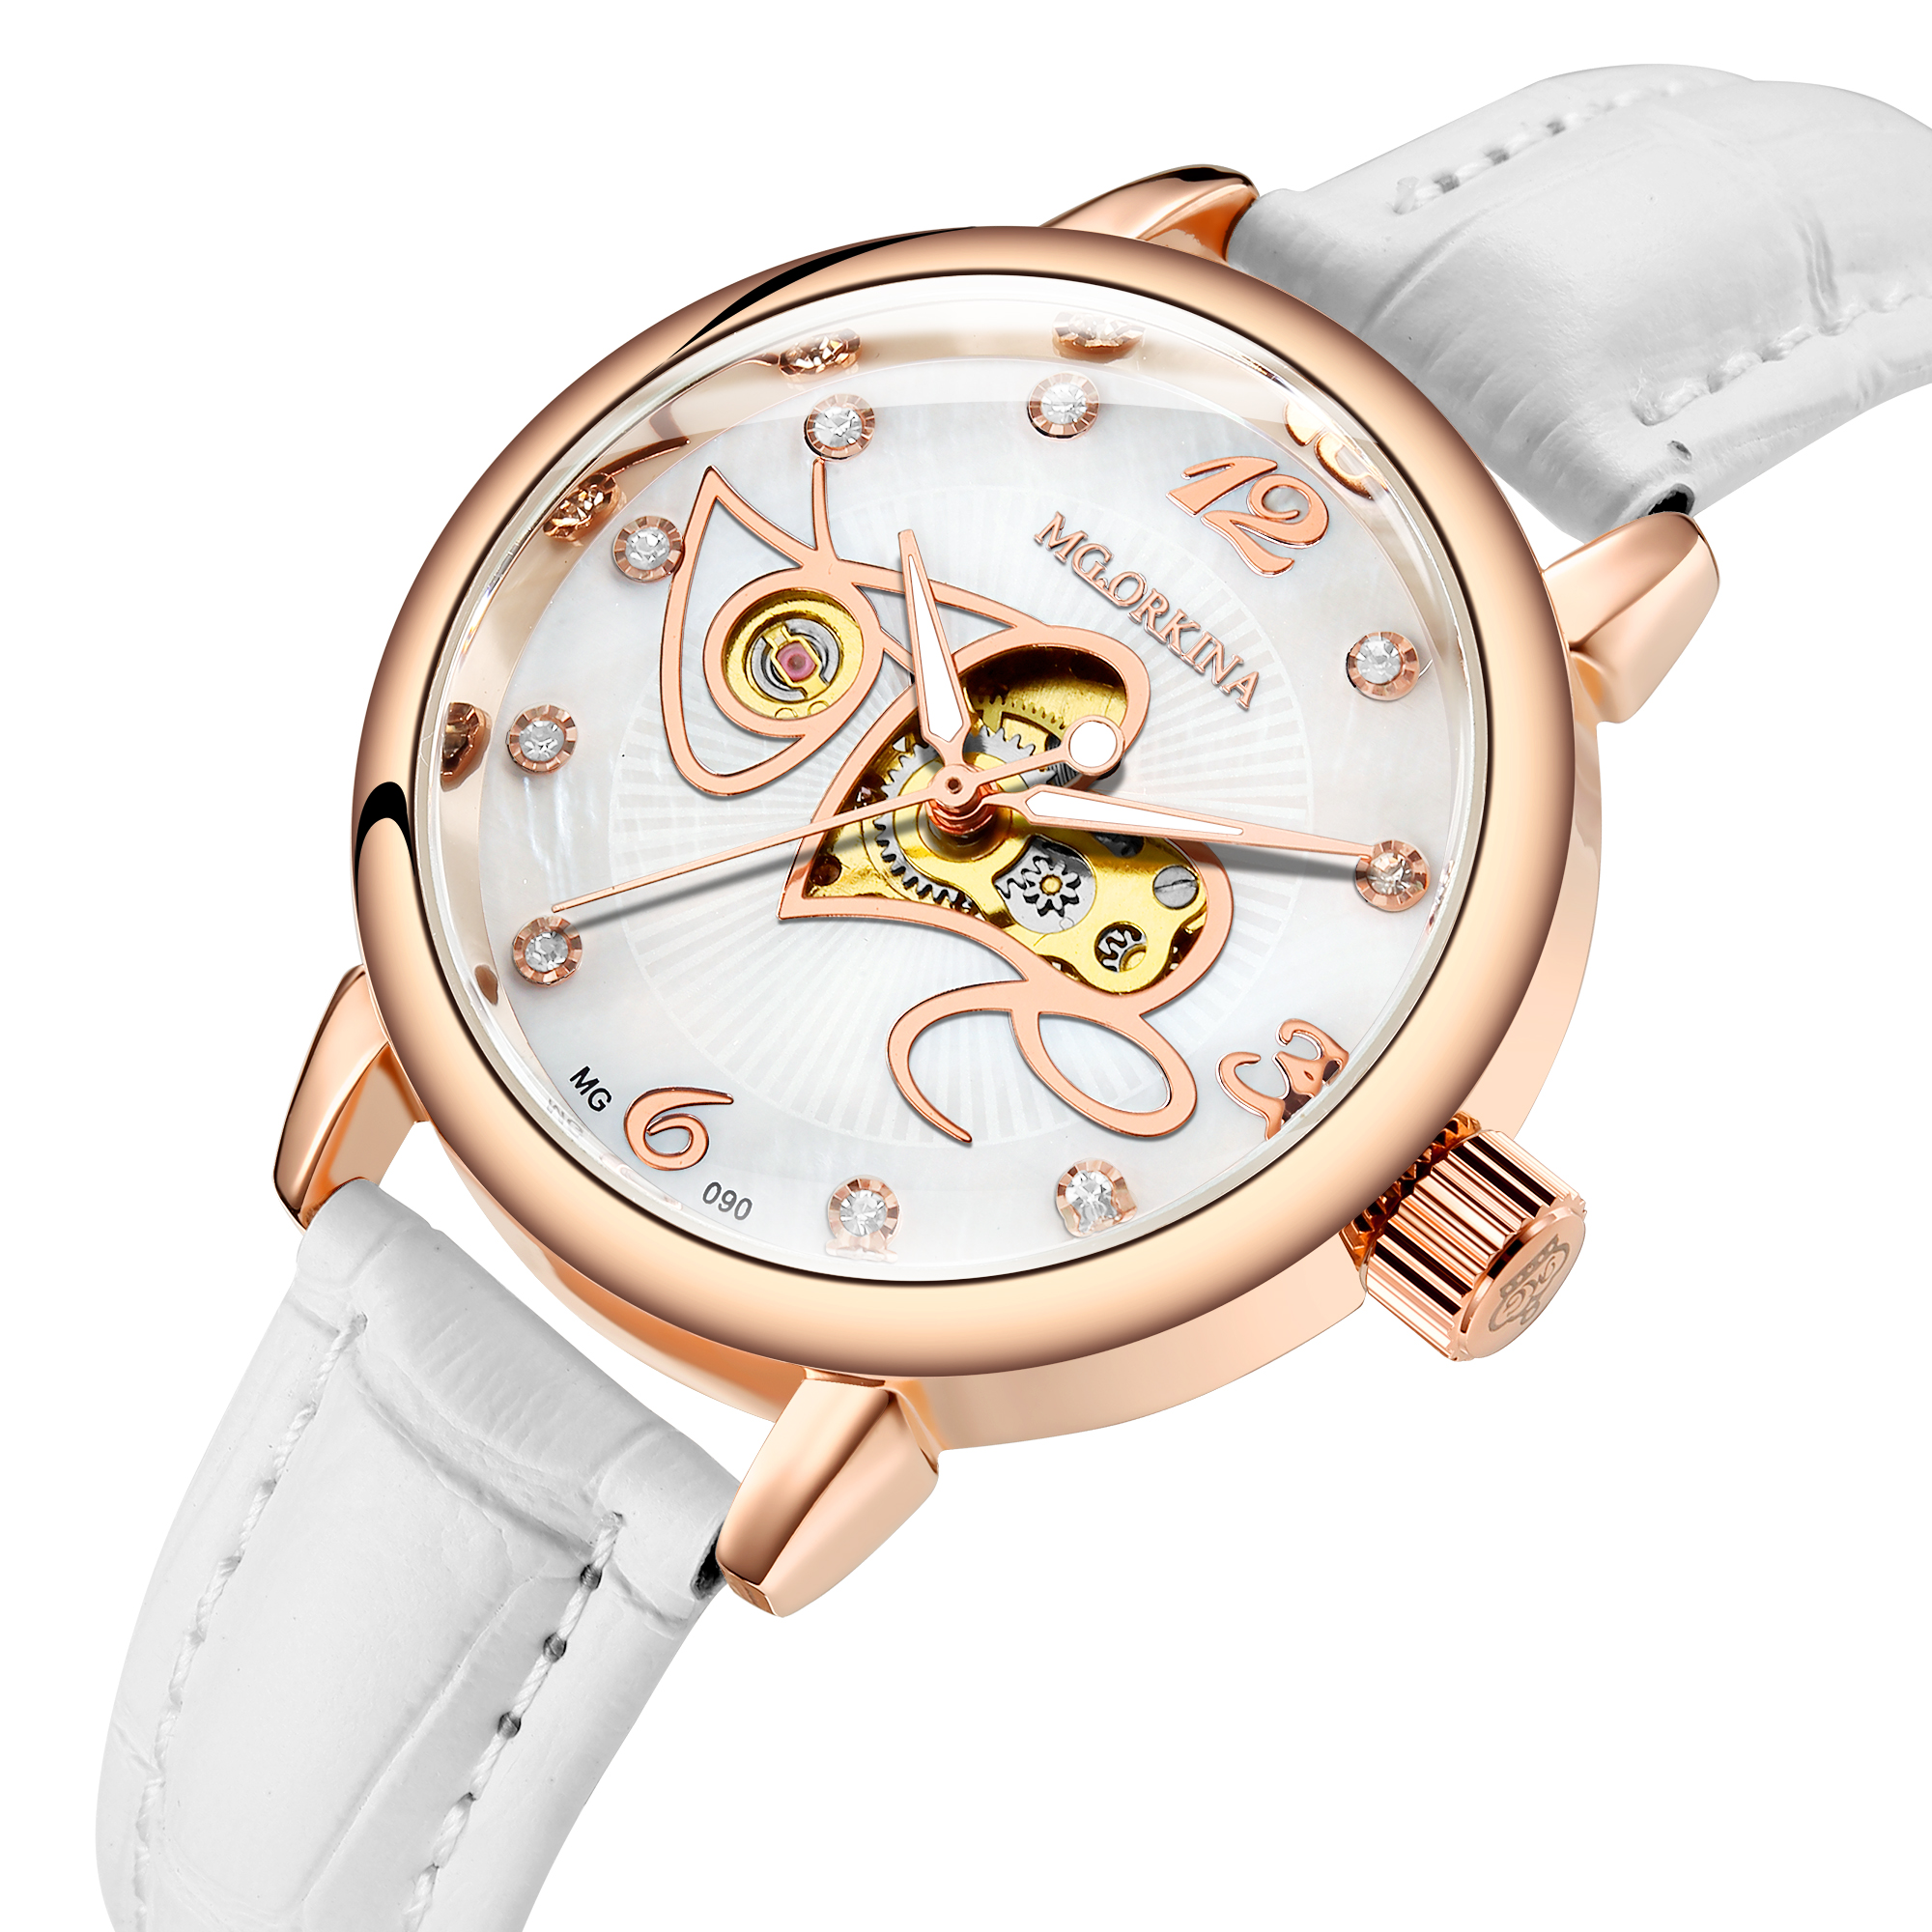 MG.ORKINA Leather Automatic Mechanical Watch Women Stainless Steel Dial  Sparkling Crystal Wrist Watches for Women Women's Watches     - title=